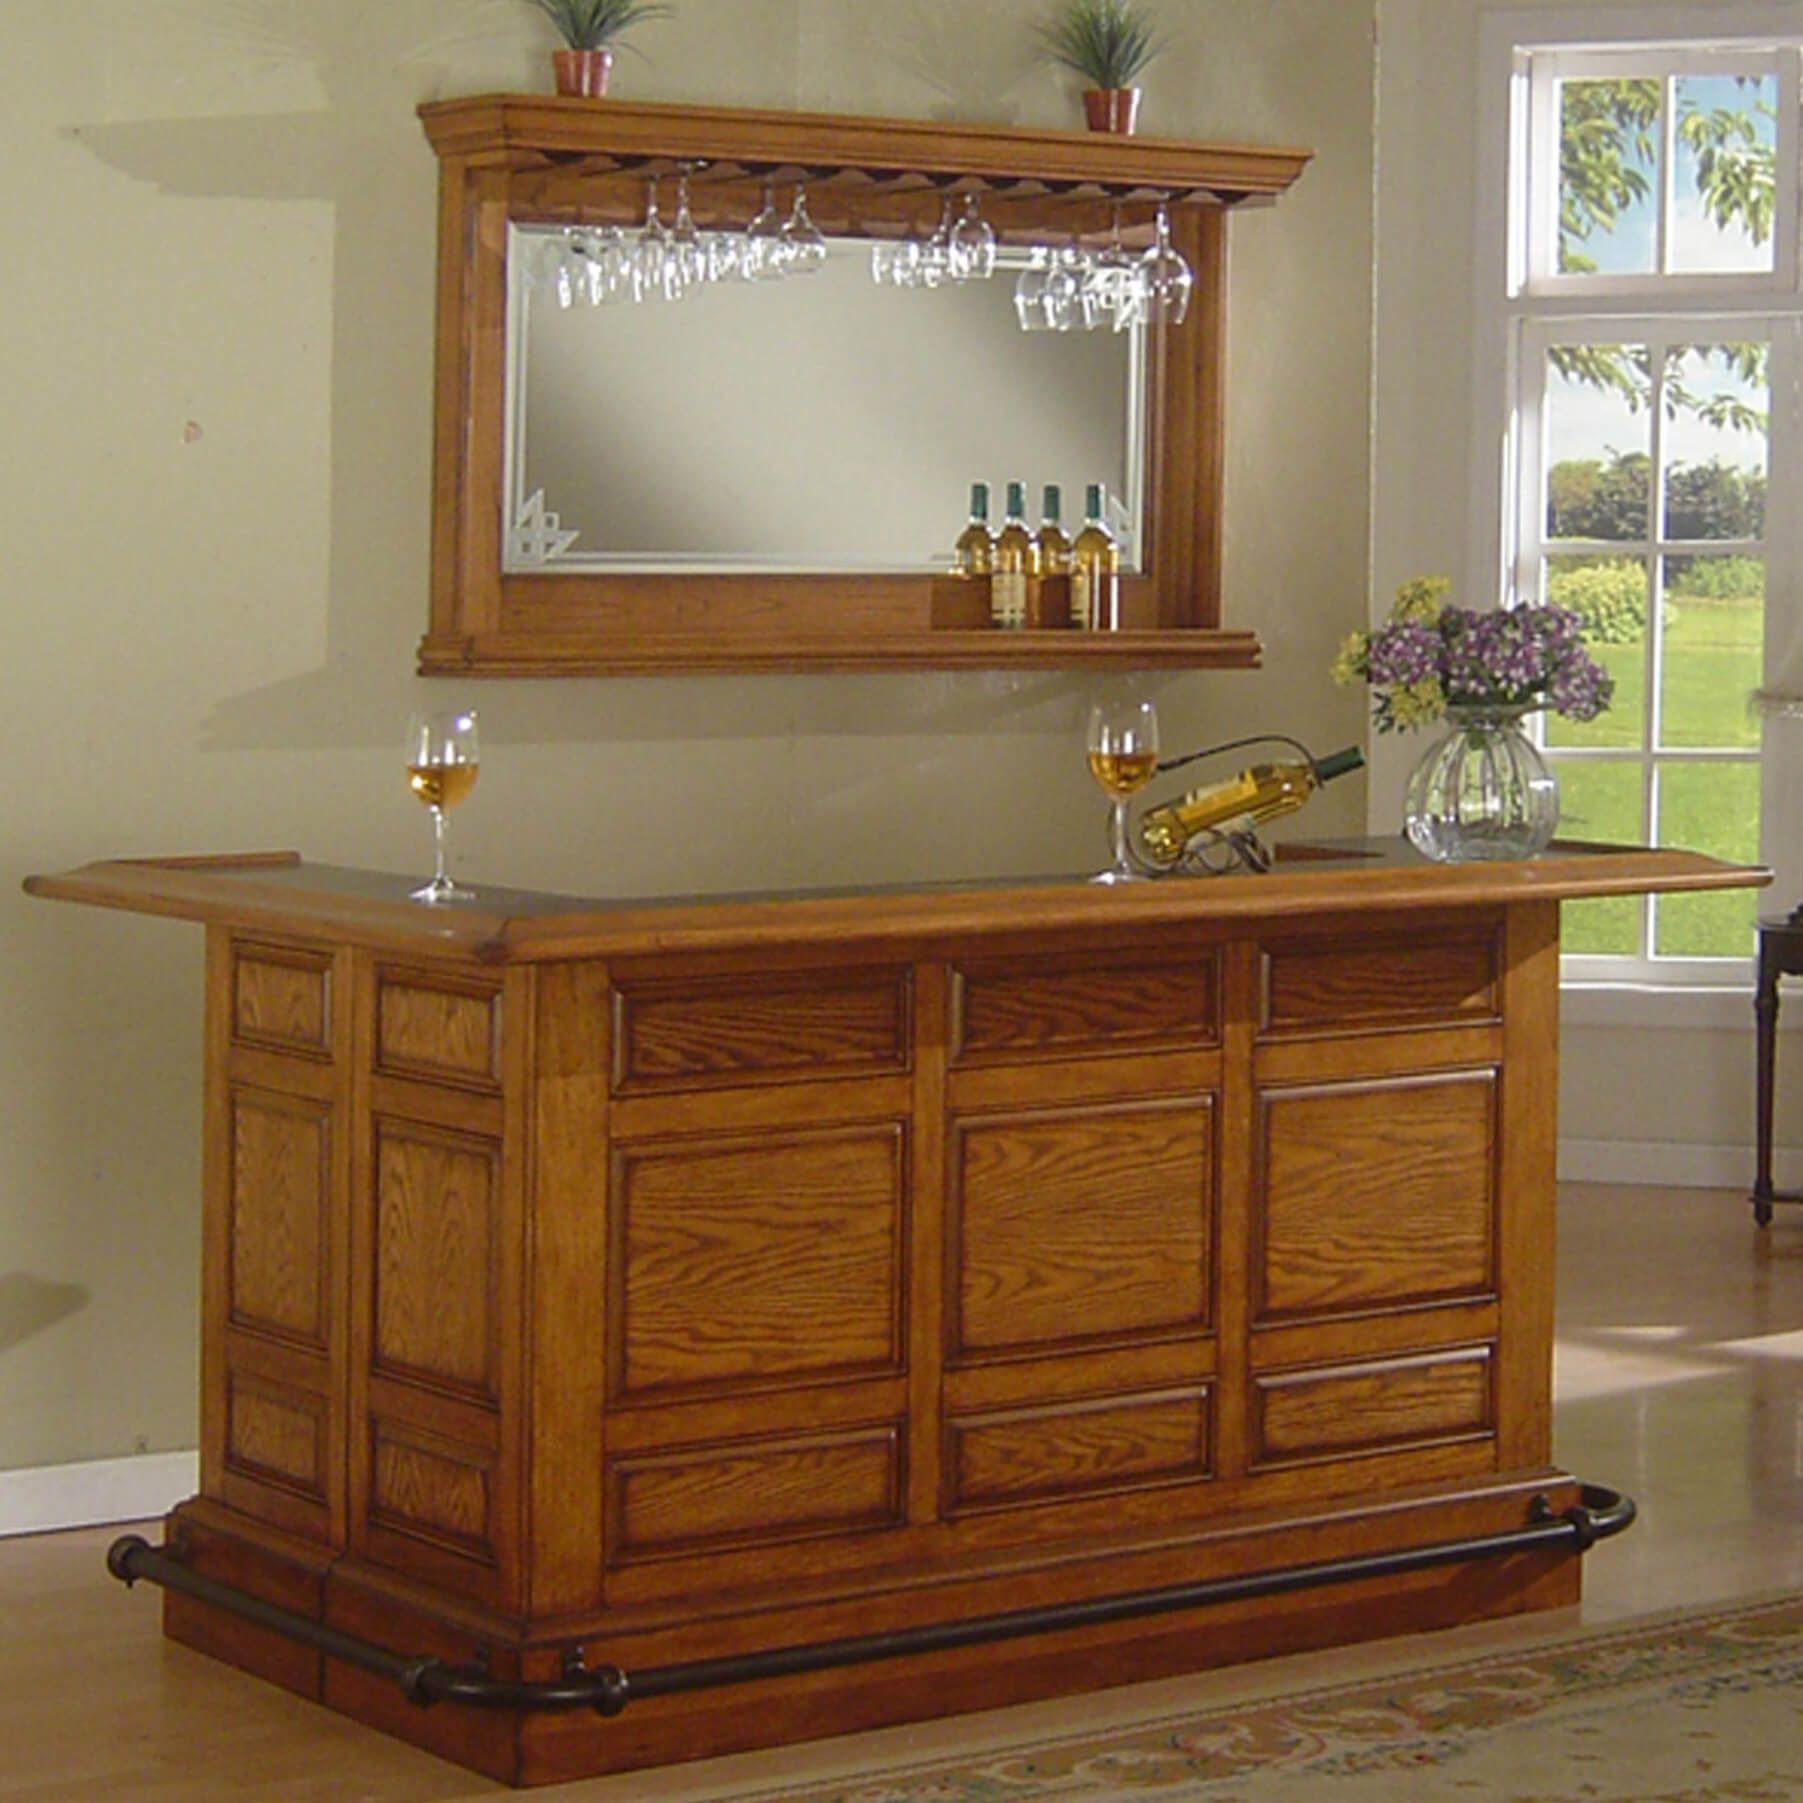 42 Top Home Bar Cabinets Sets Wine Bars 2020 Bars For Home Home Bar Furniture Small Bars For Home